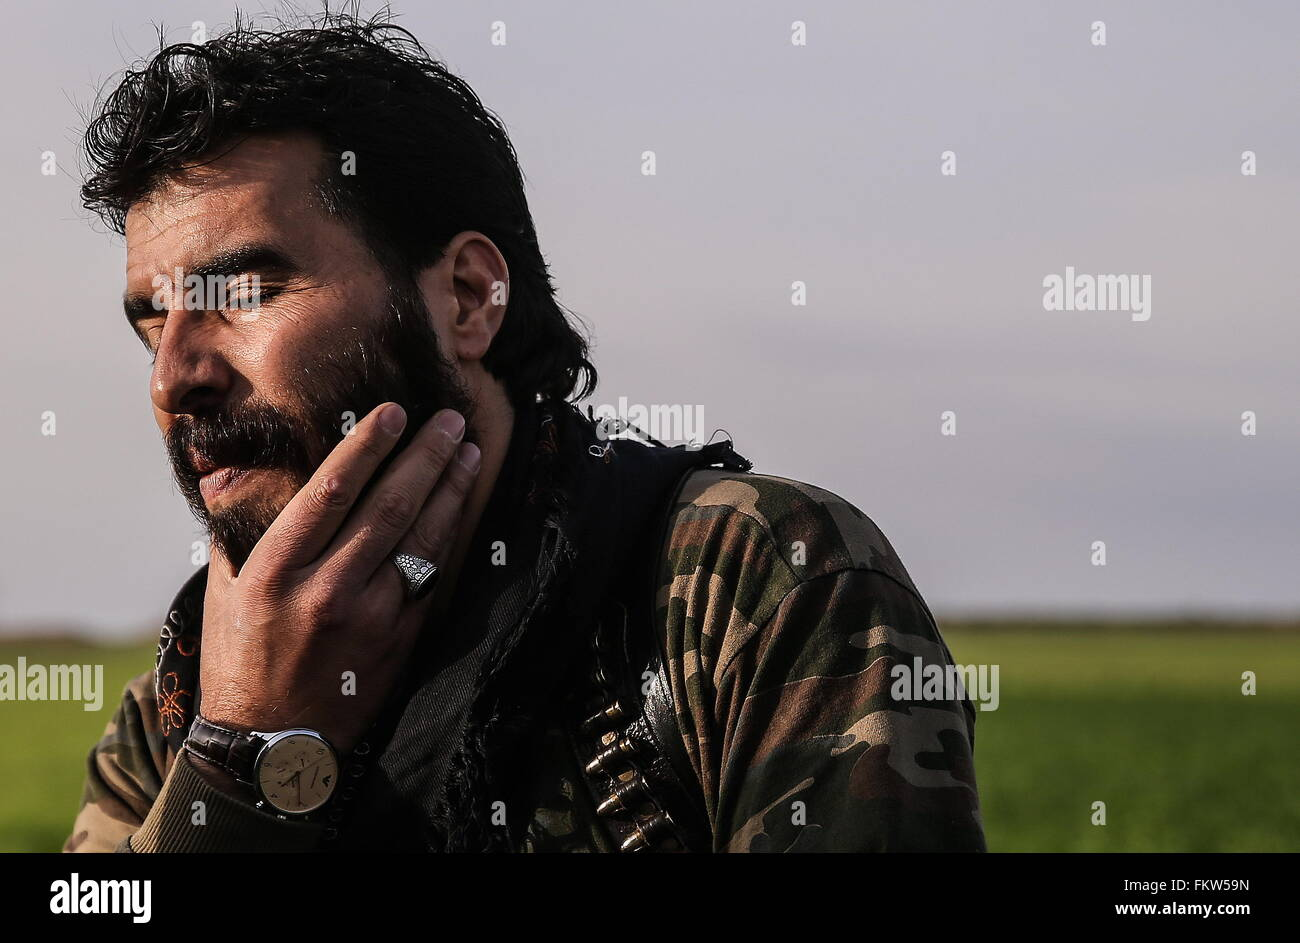 SYRIA. MARCH 10, 2016. Abu Juma, leader of Jaysh al-Thuwar, near the town of Azaz. Jaysh al-Thuwar, or the Army Stock Photo